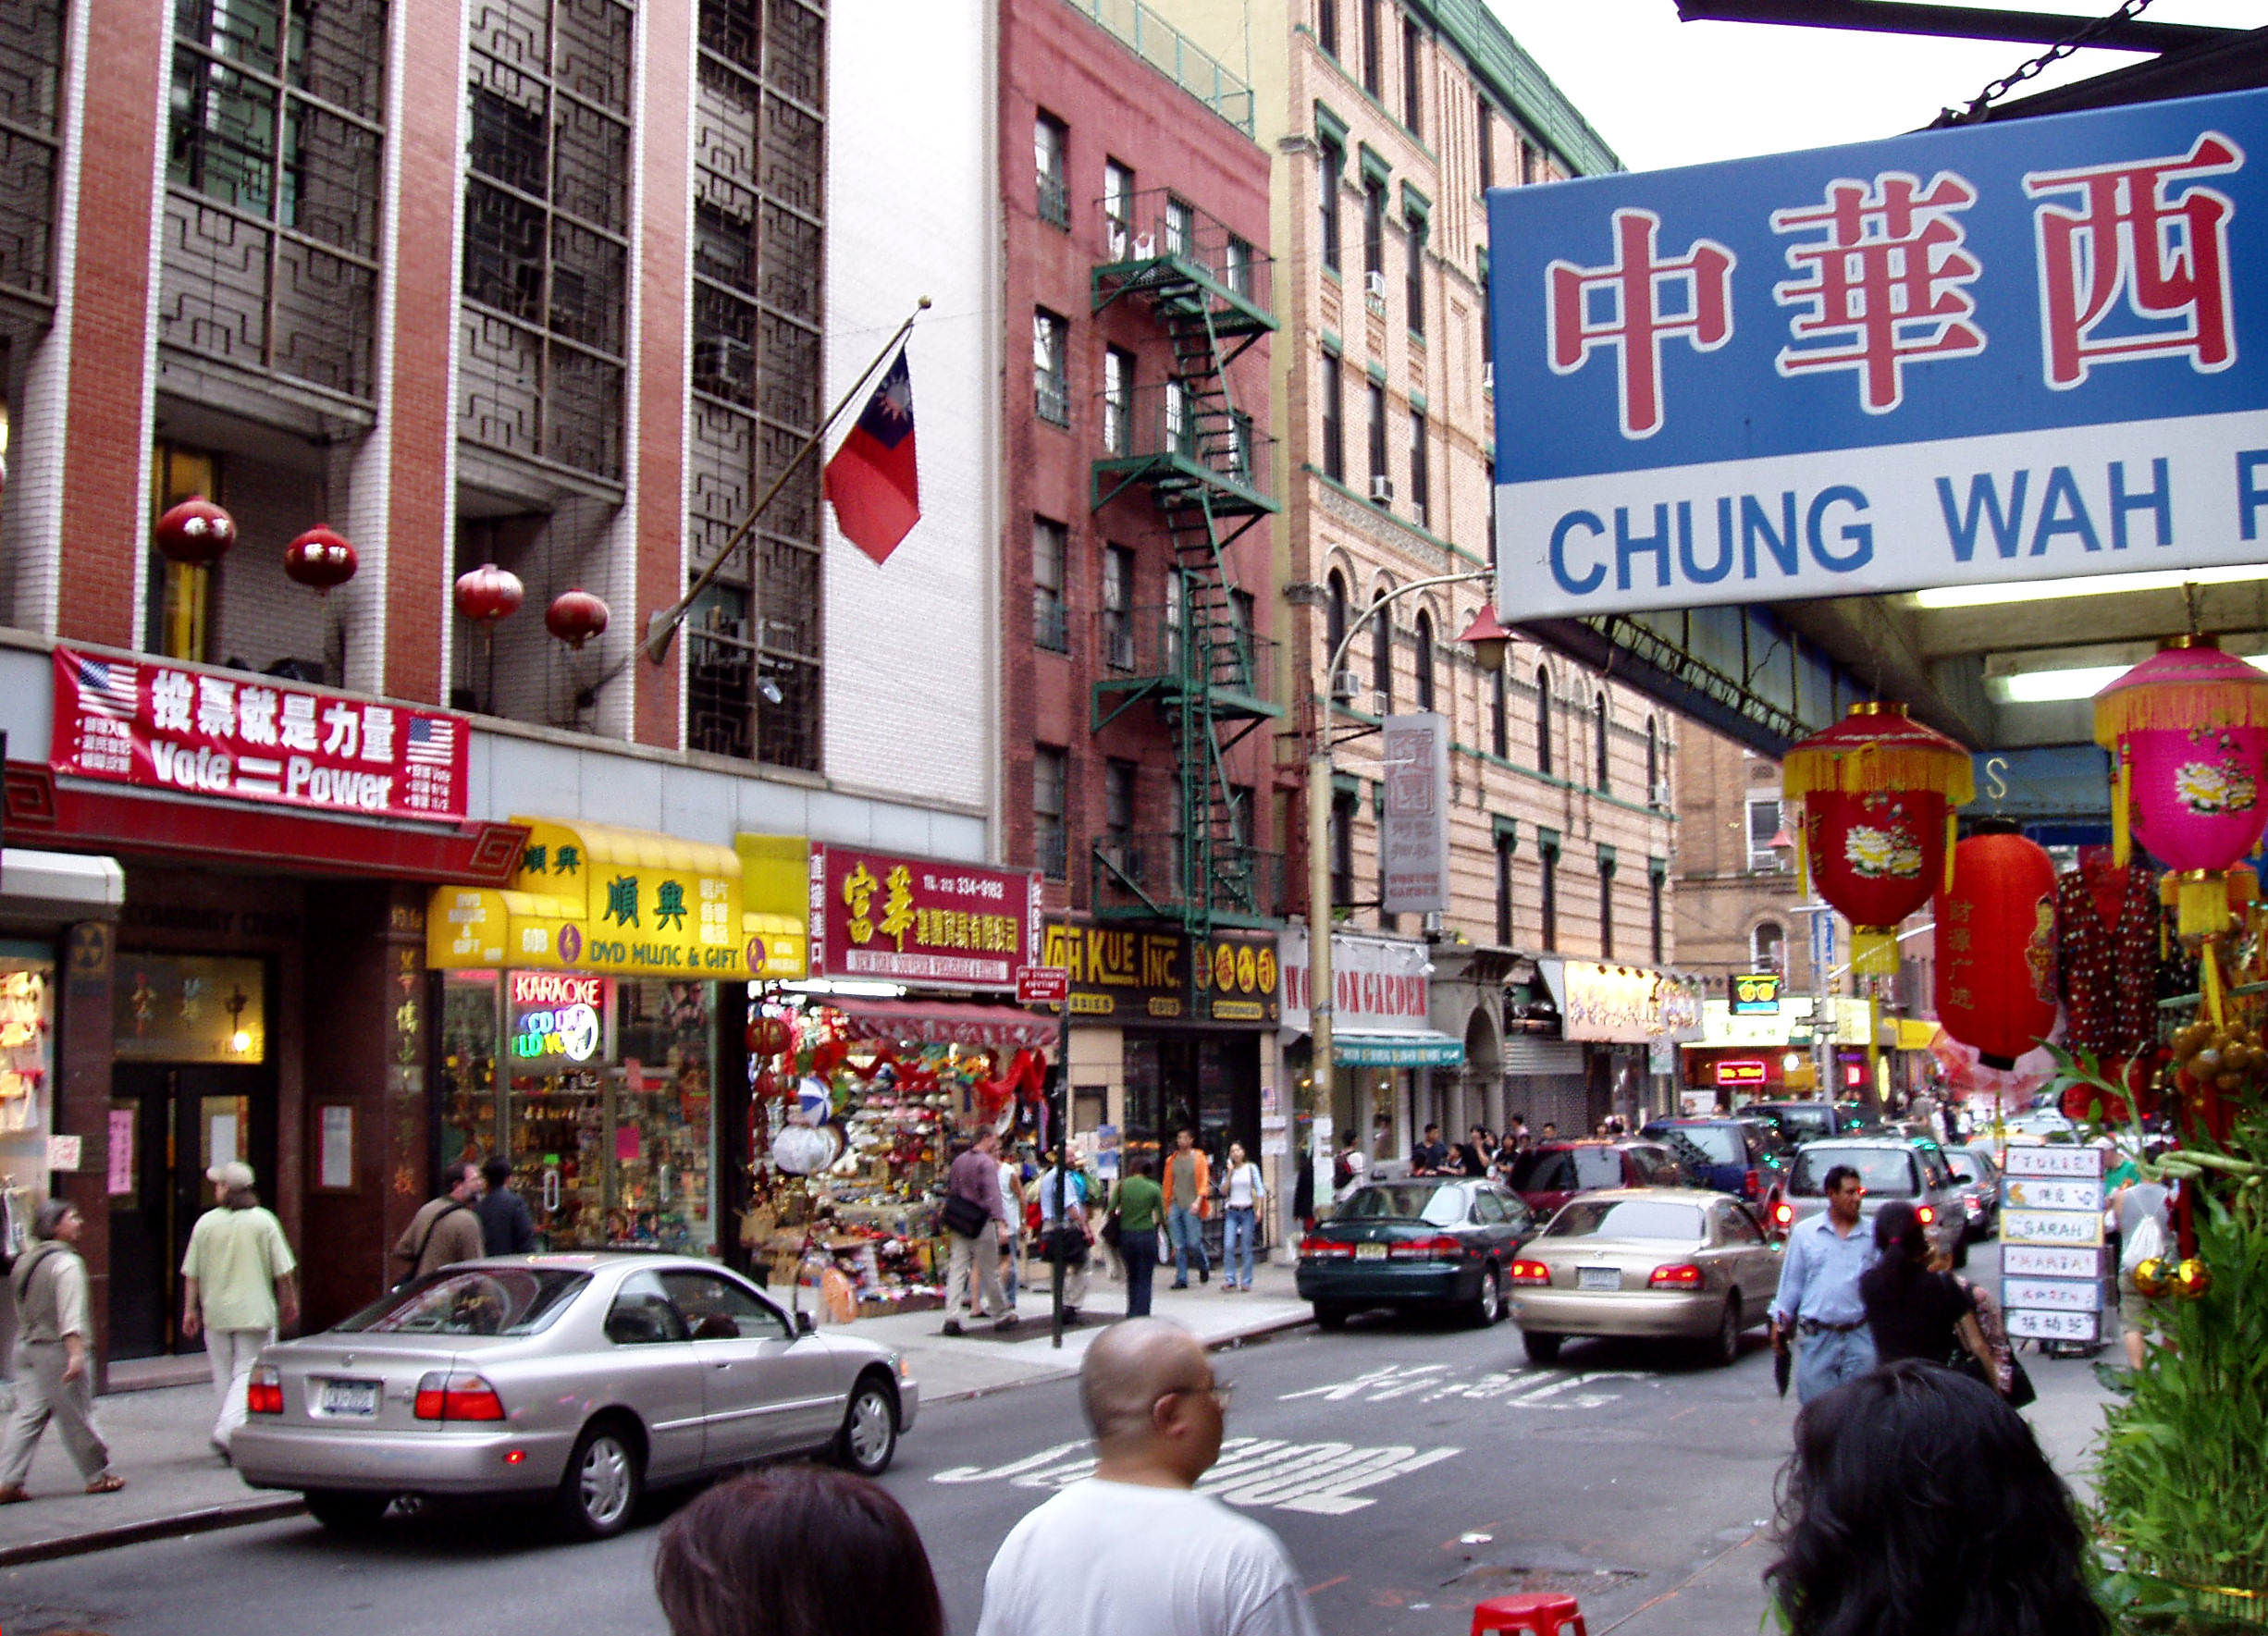 List of ethnic enclaves in north american cities wikipedia manhattans chinatown home to the highest concentration of chinese people in the western hemisphere is the oldest of at least 9 chinatowns in the new york publicscrutiny Gallery